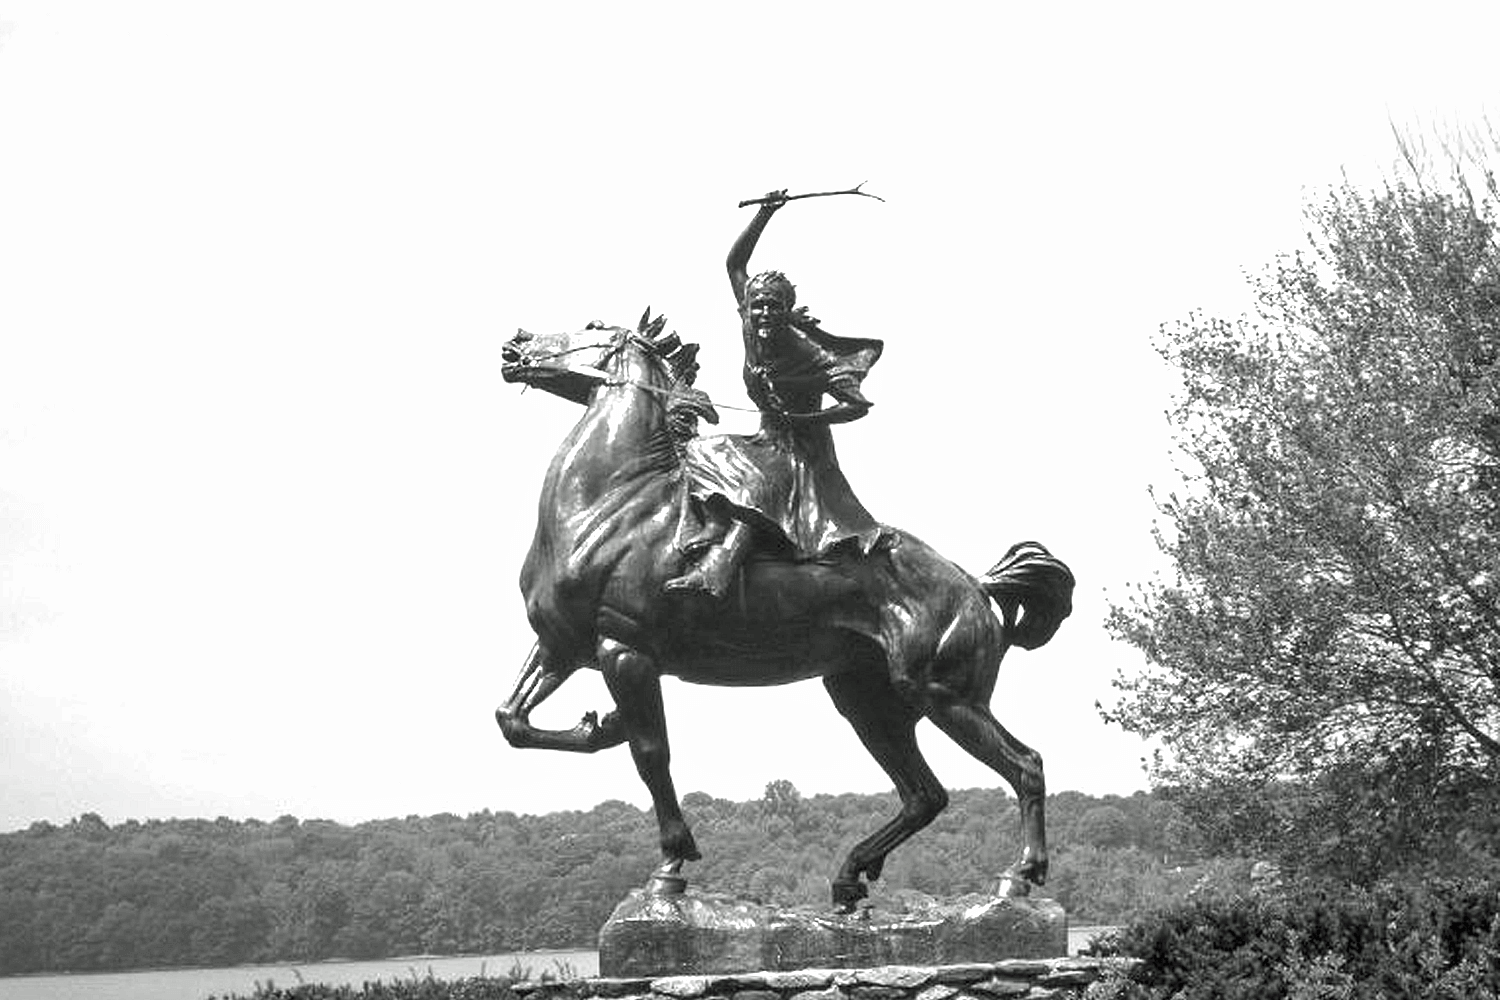 Sybil Ludington riding horse, Revolutionary War hero